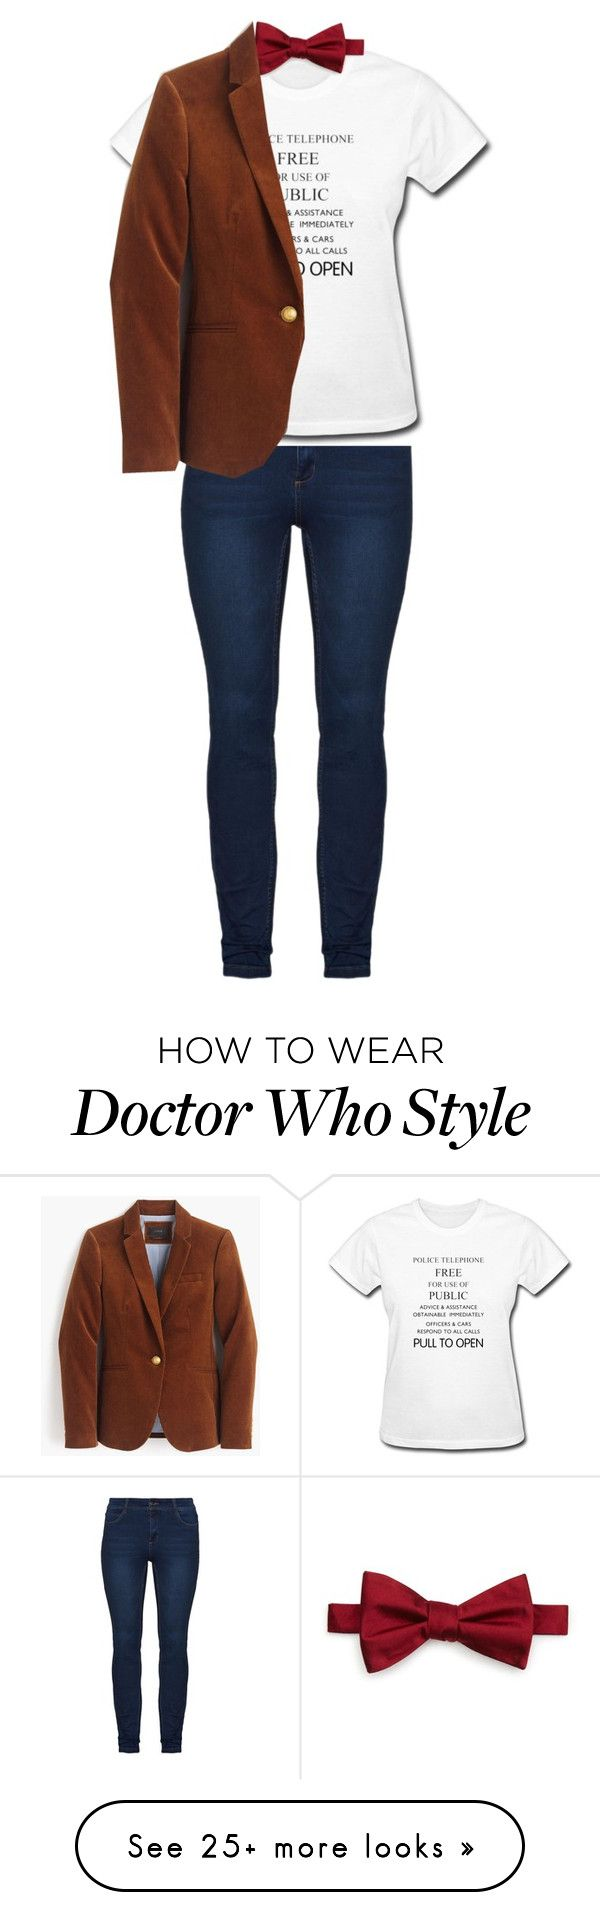 """Untitled #213"" by lisegi on Polyvore featuring The Men's Store and J.Crew"